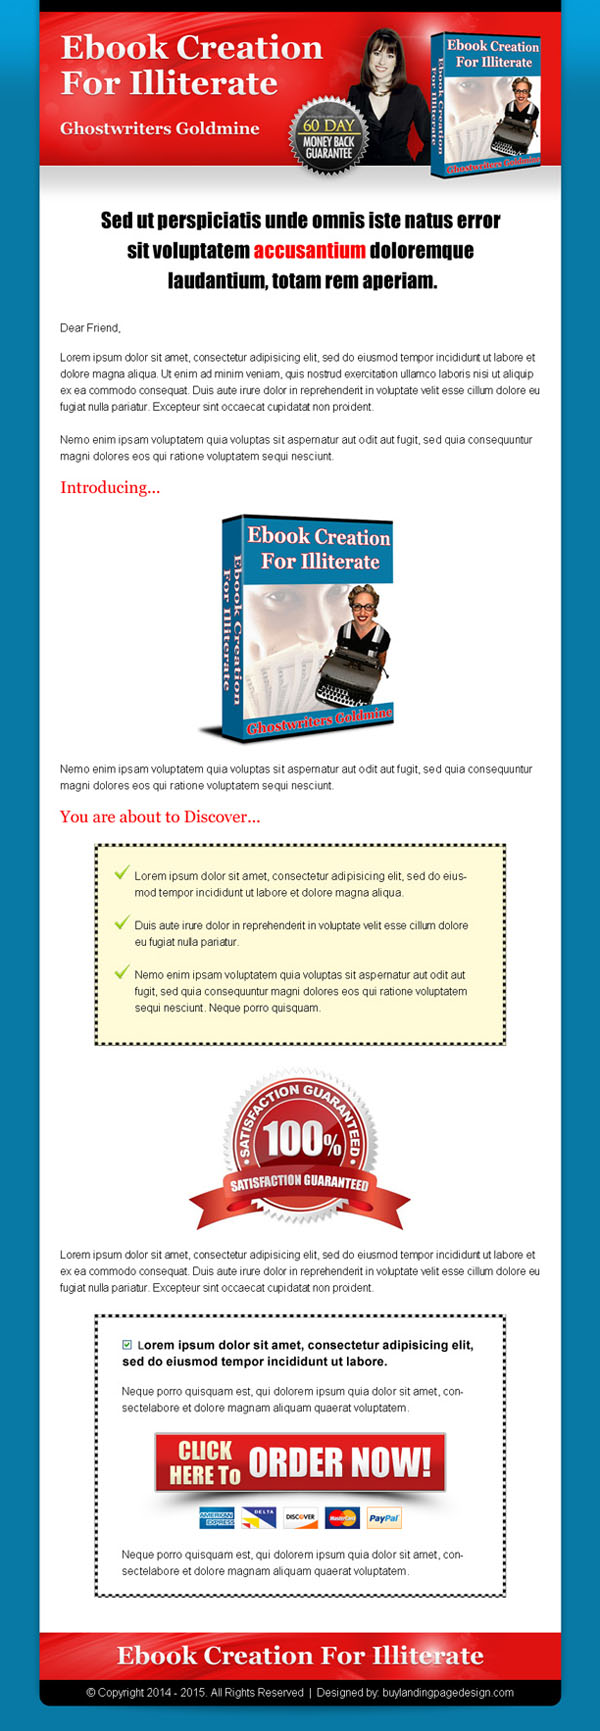 ebook-selling-sales-page-landing-page-design-to-increase-sales-of-ebook-lander-006